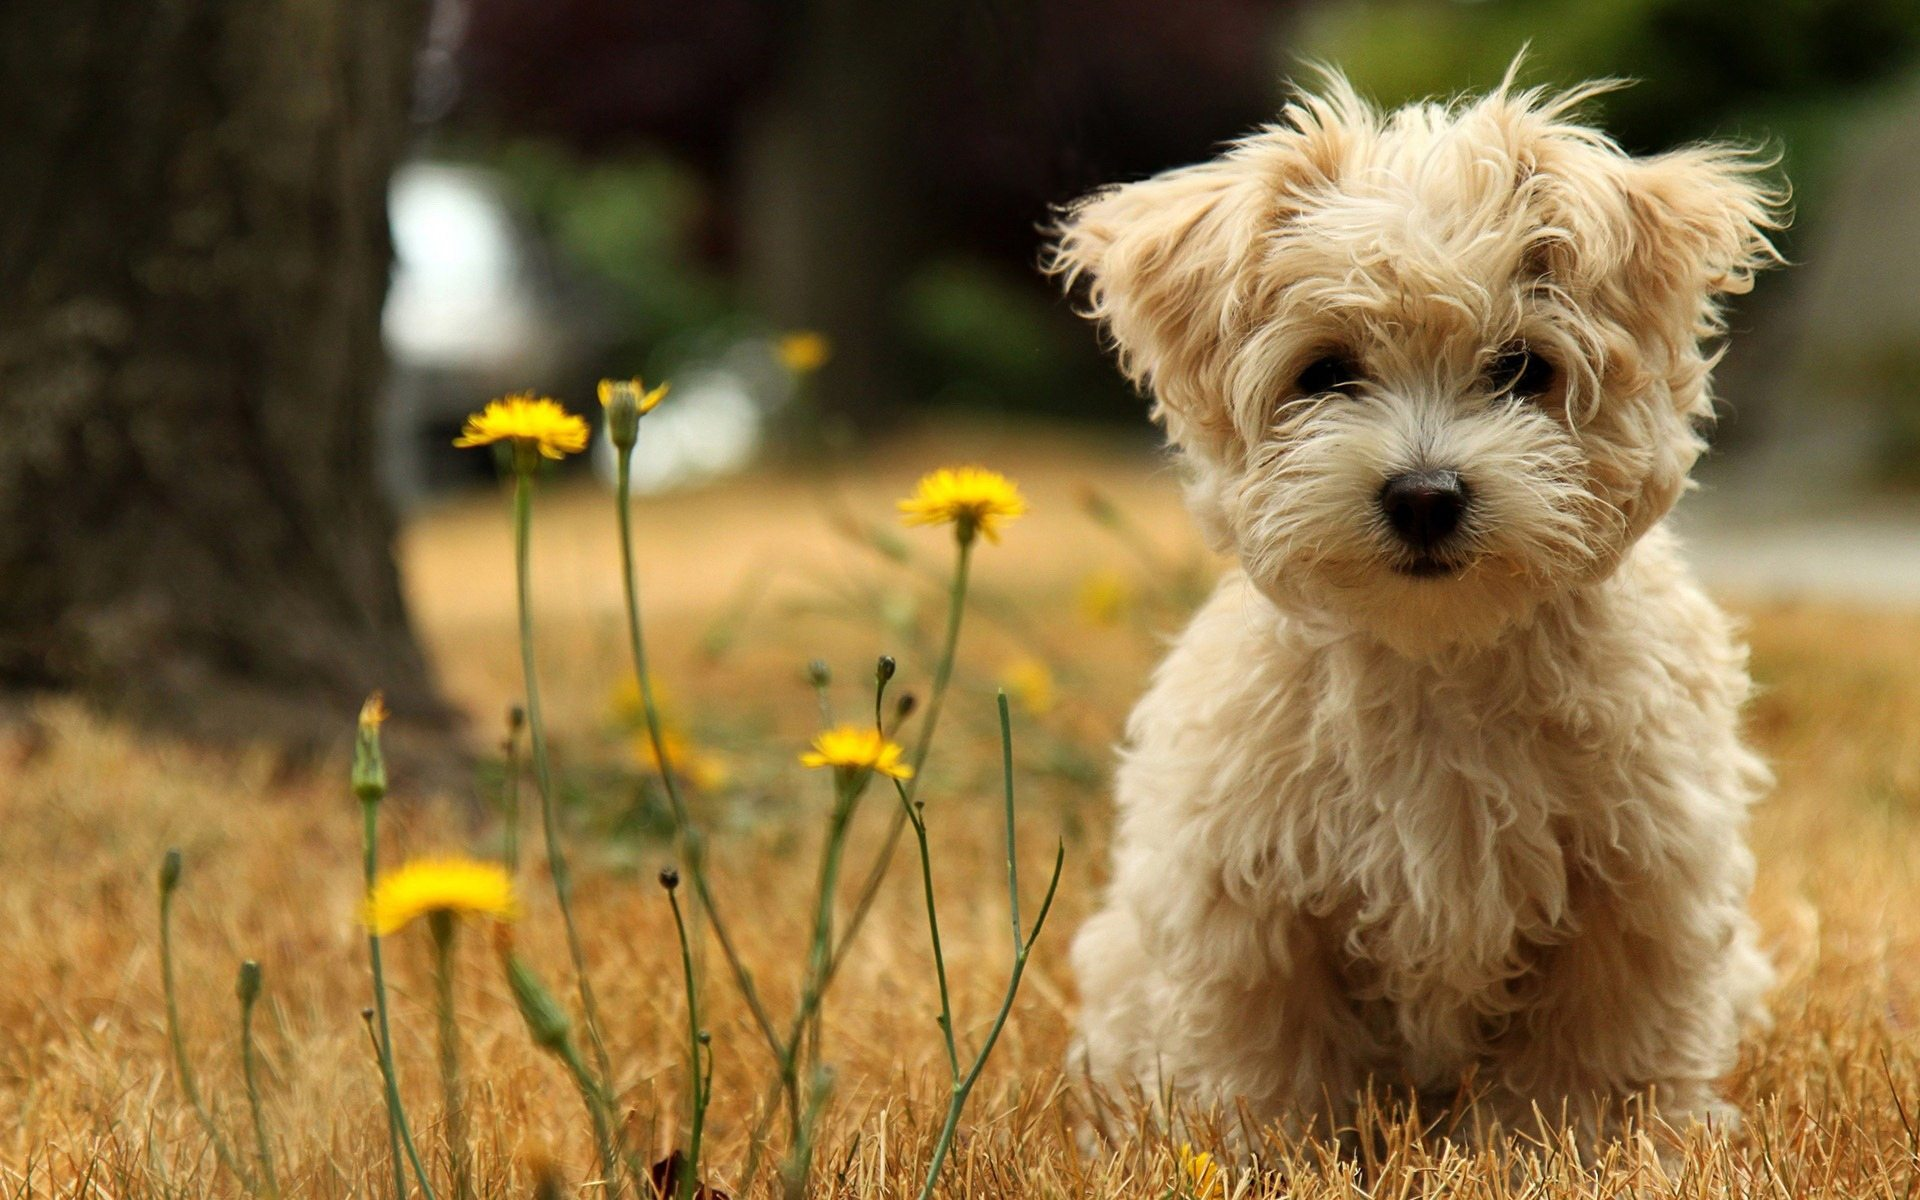 glamorous-cute-little-puppy-hd-wallpaper-puppy-wallpaper-hd-free-download-desktop-for-bedroom-doggy-wallpapers-border-ipad-mobile-ipod-touch